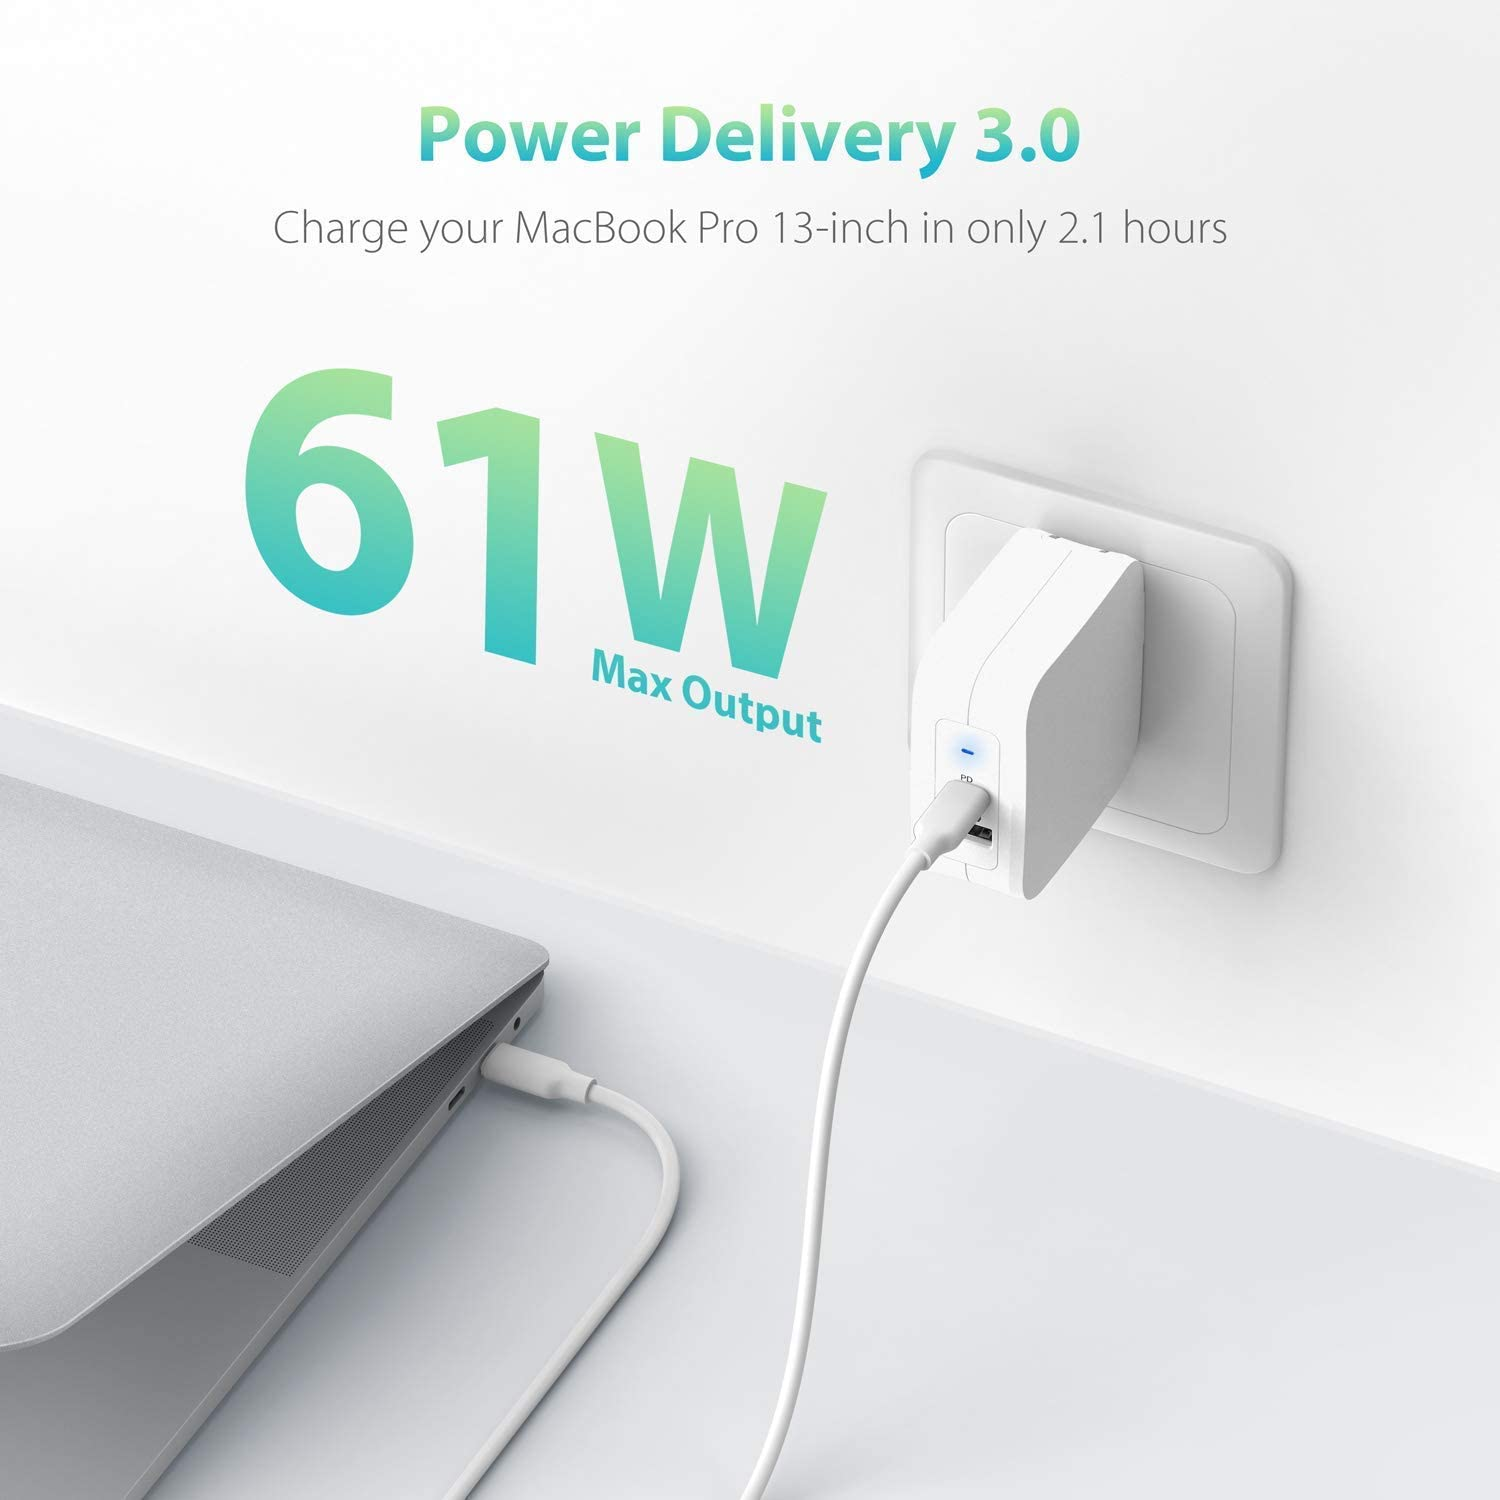 MacBook Pro Air RAVPower 61W Type C PD 3.0 Power Adapter Compatible with iPhone 11//11 Pro // 11 Pro Max White USB Wall Charger Dell XPS Dual Port USB C Wall Charger iPad Pro 2018 and More